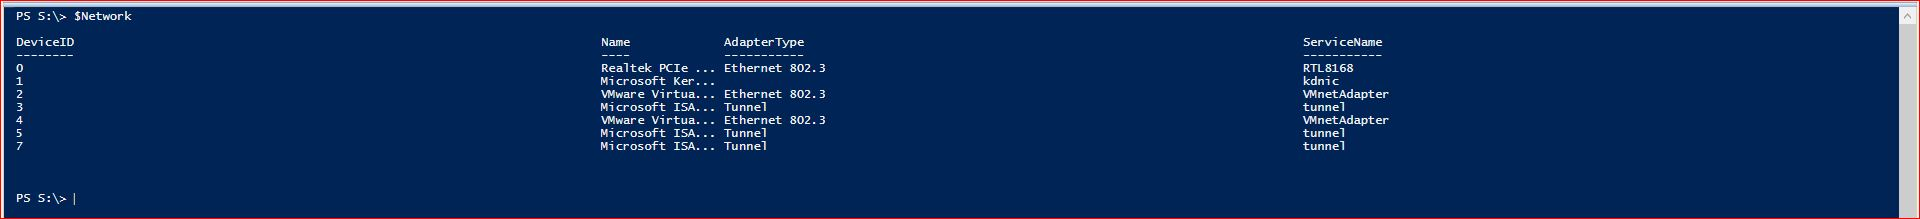 PowerShell Format Output View